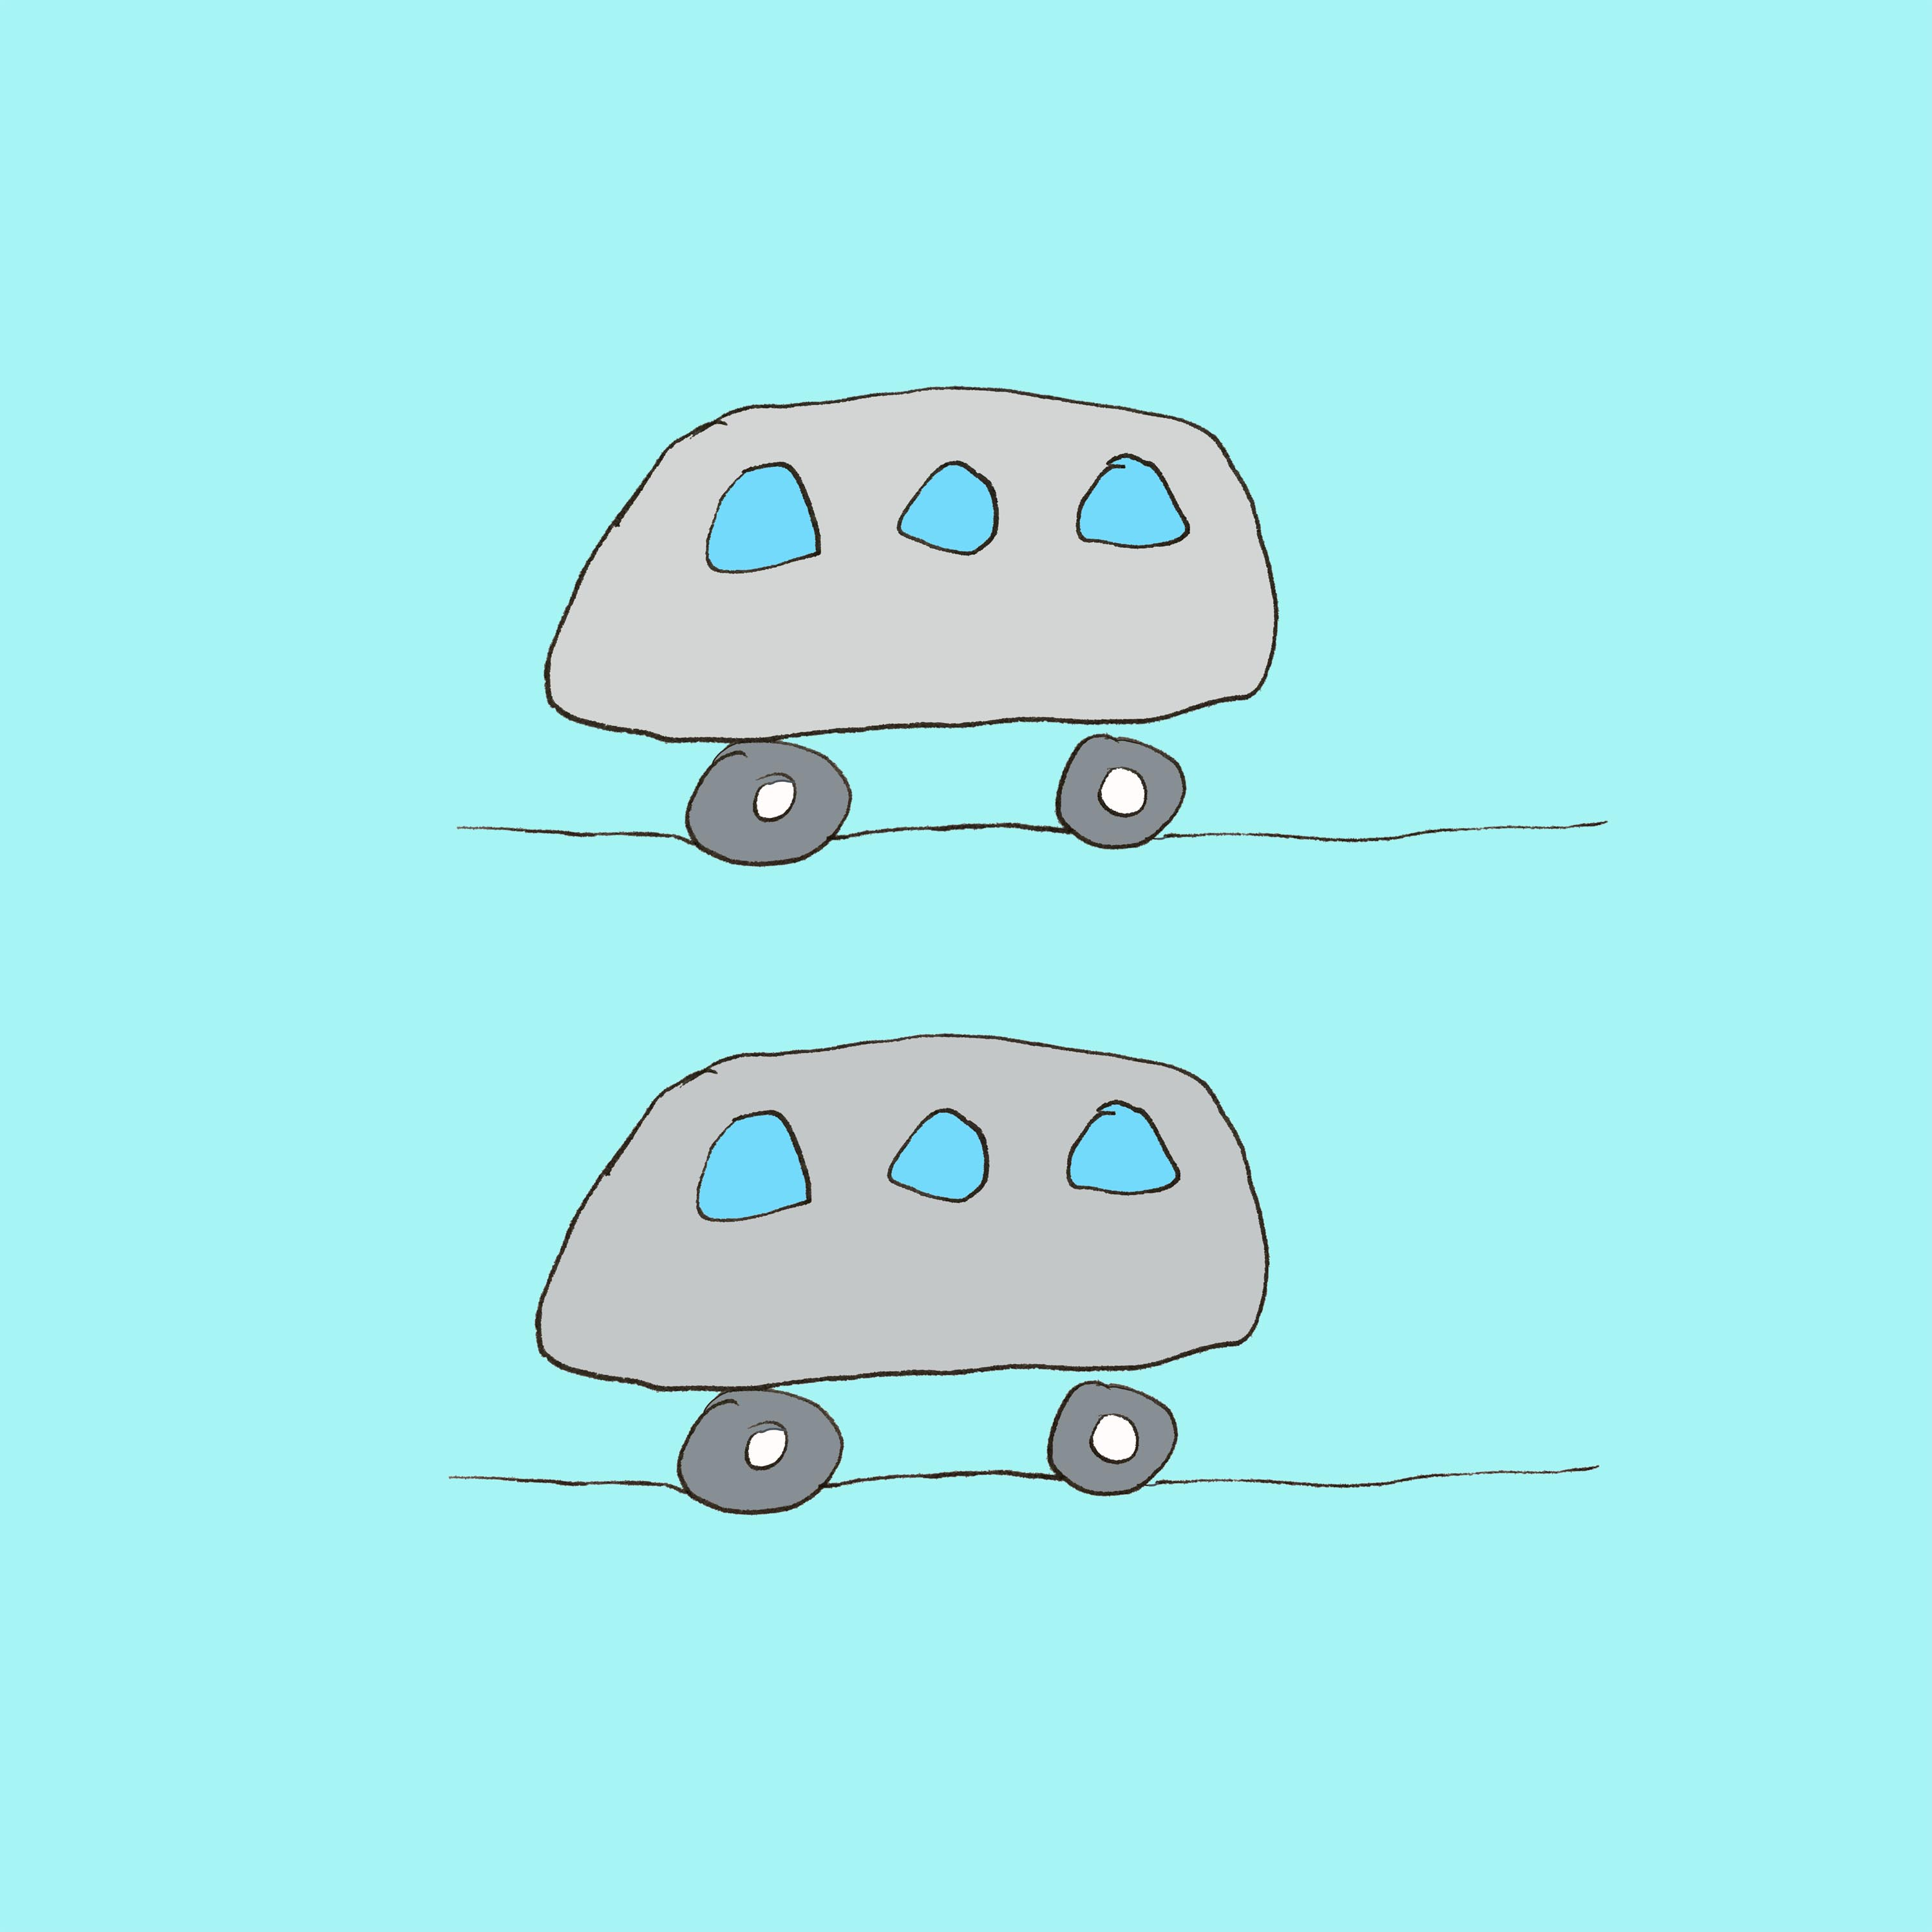 art every day number 181 the driverless car illustration drawing